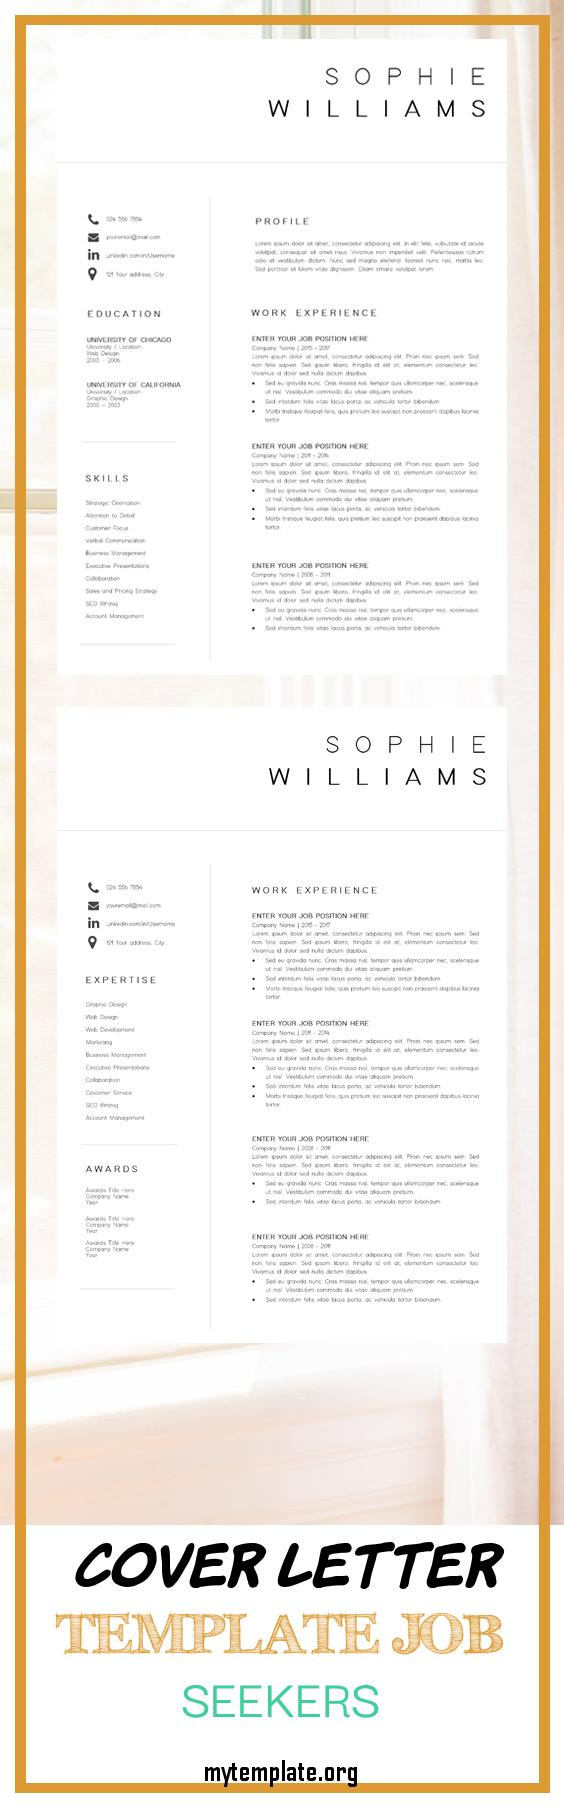 cover letter template job seekers of new cv template